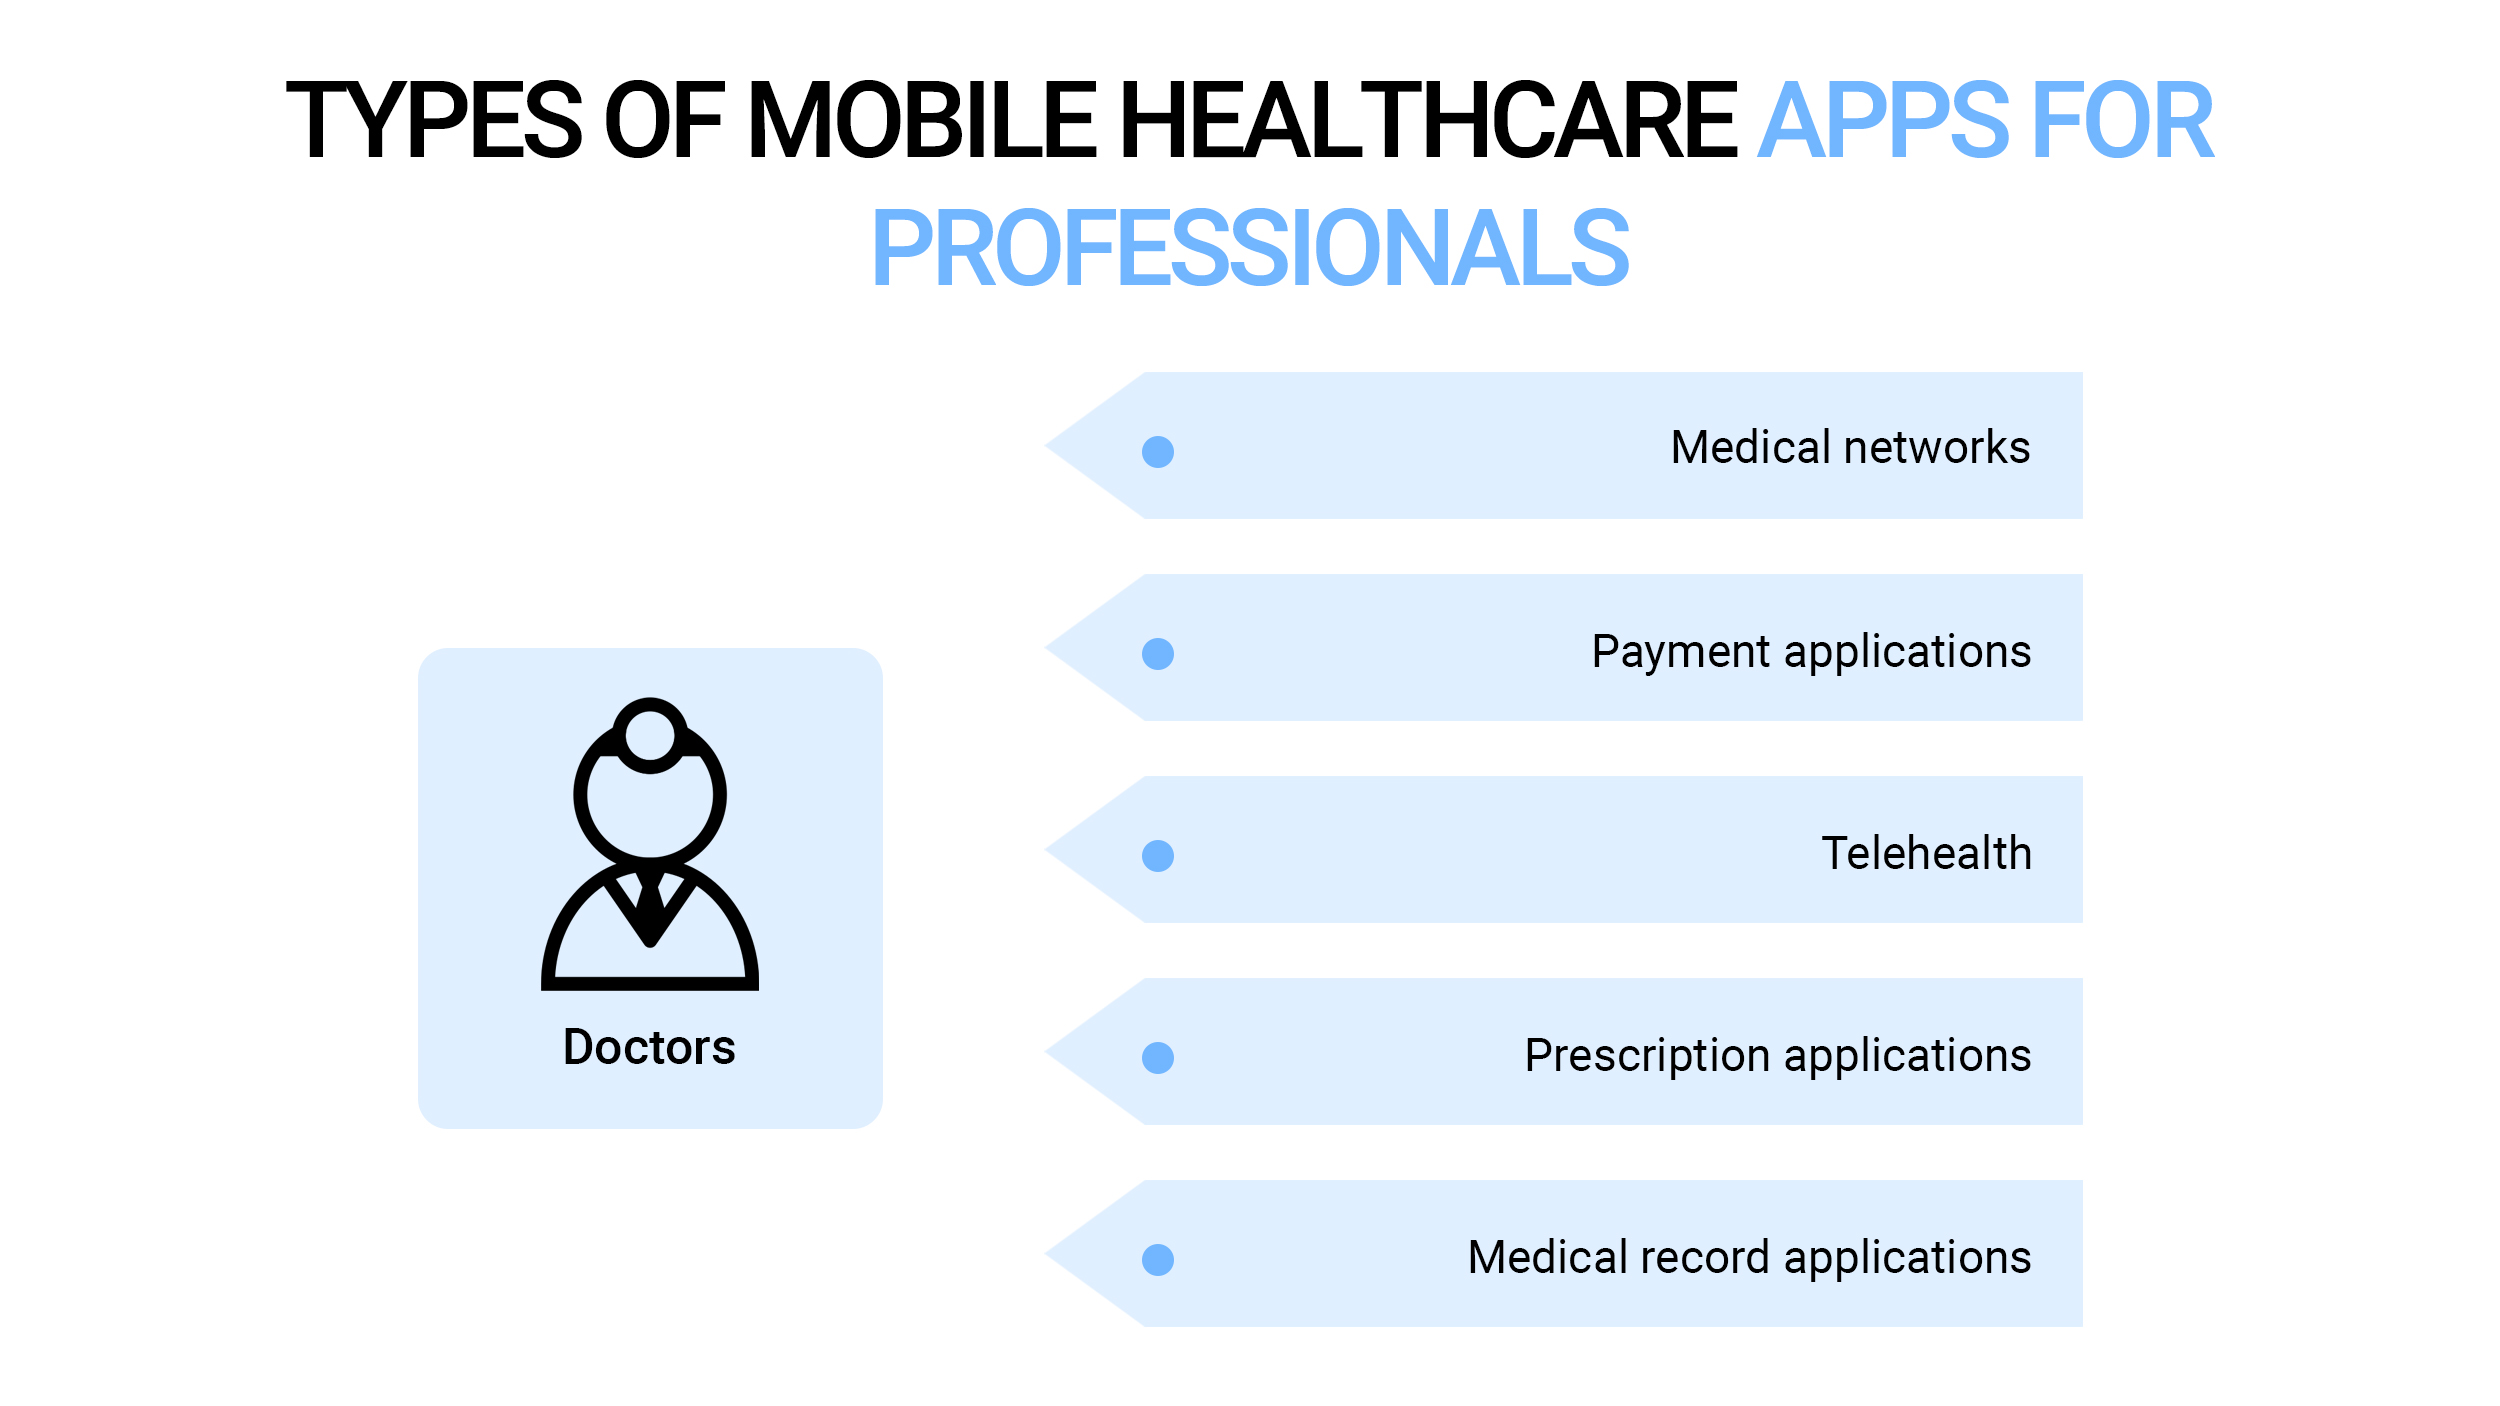 Types of mobile healthcare apps for professionals